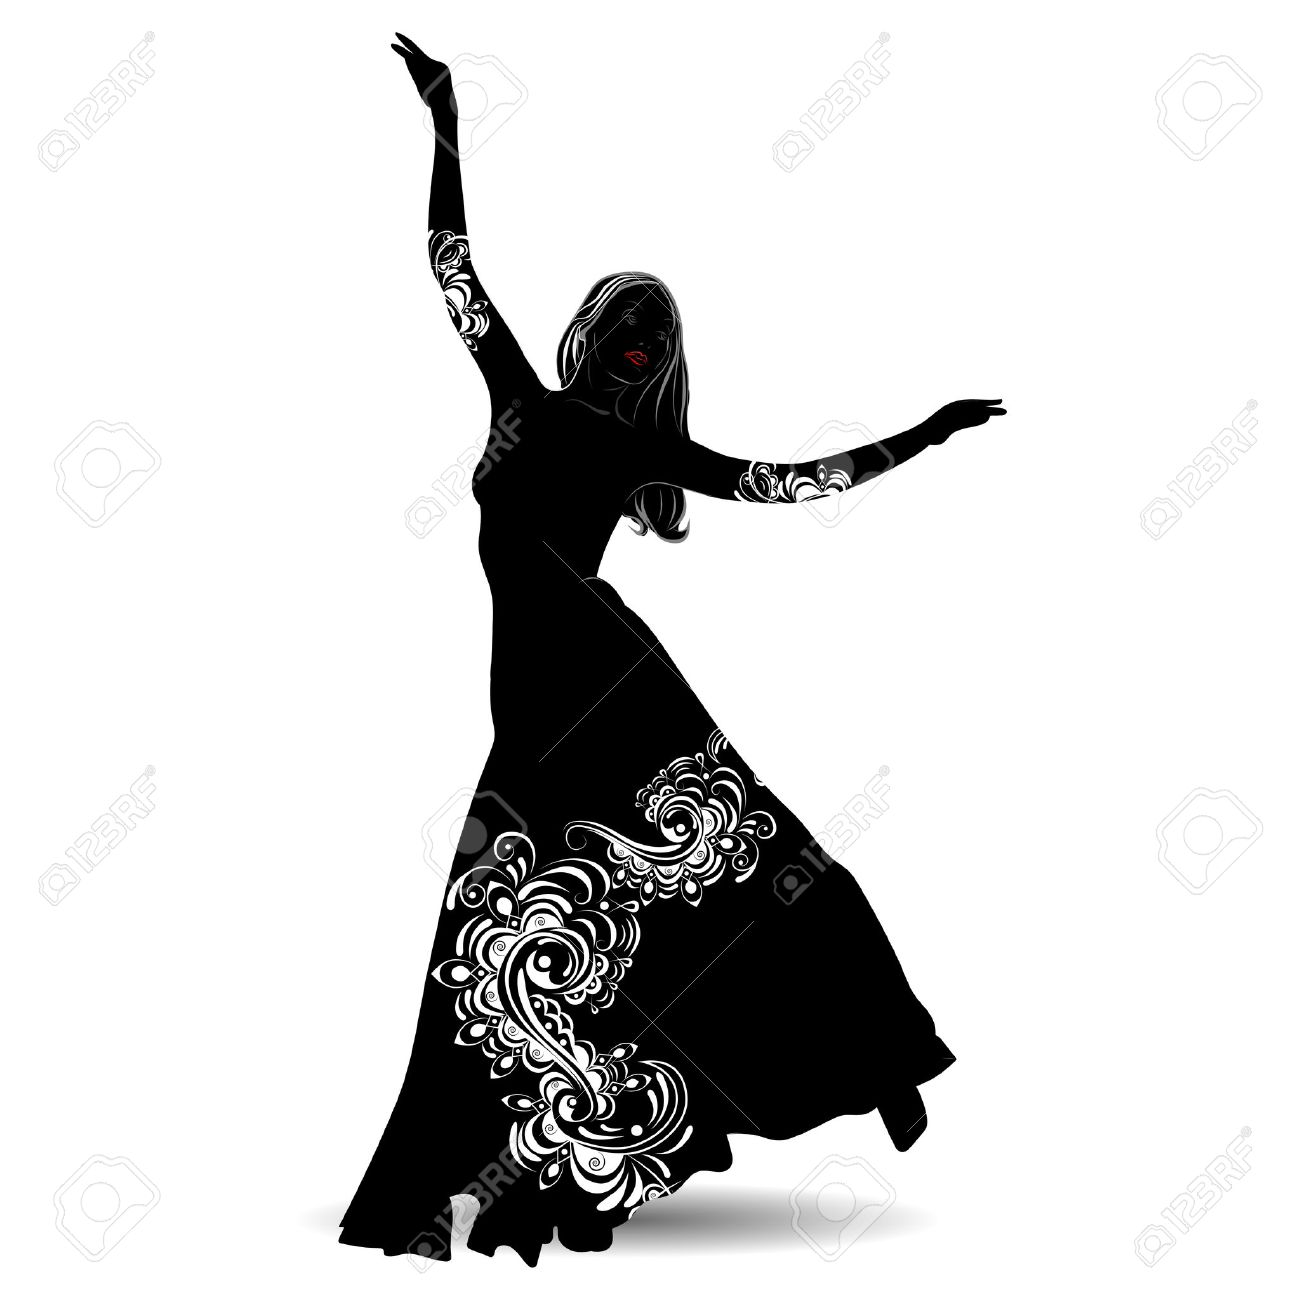 Silhouette belly dancer with designs on the outfit on white background - 55080512